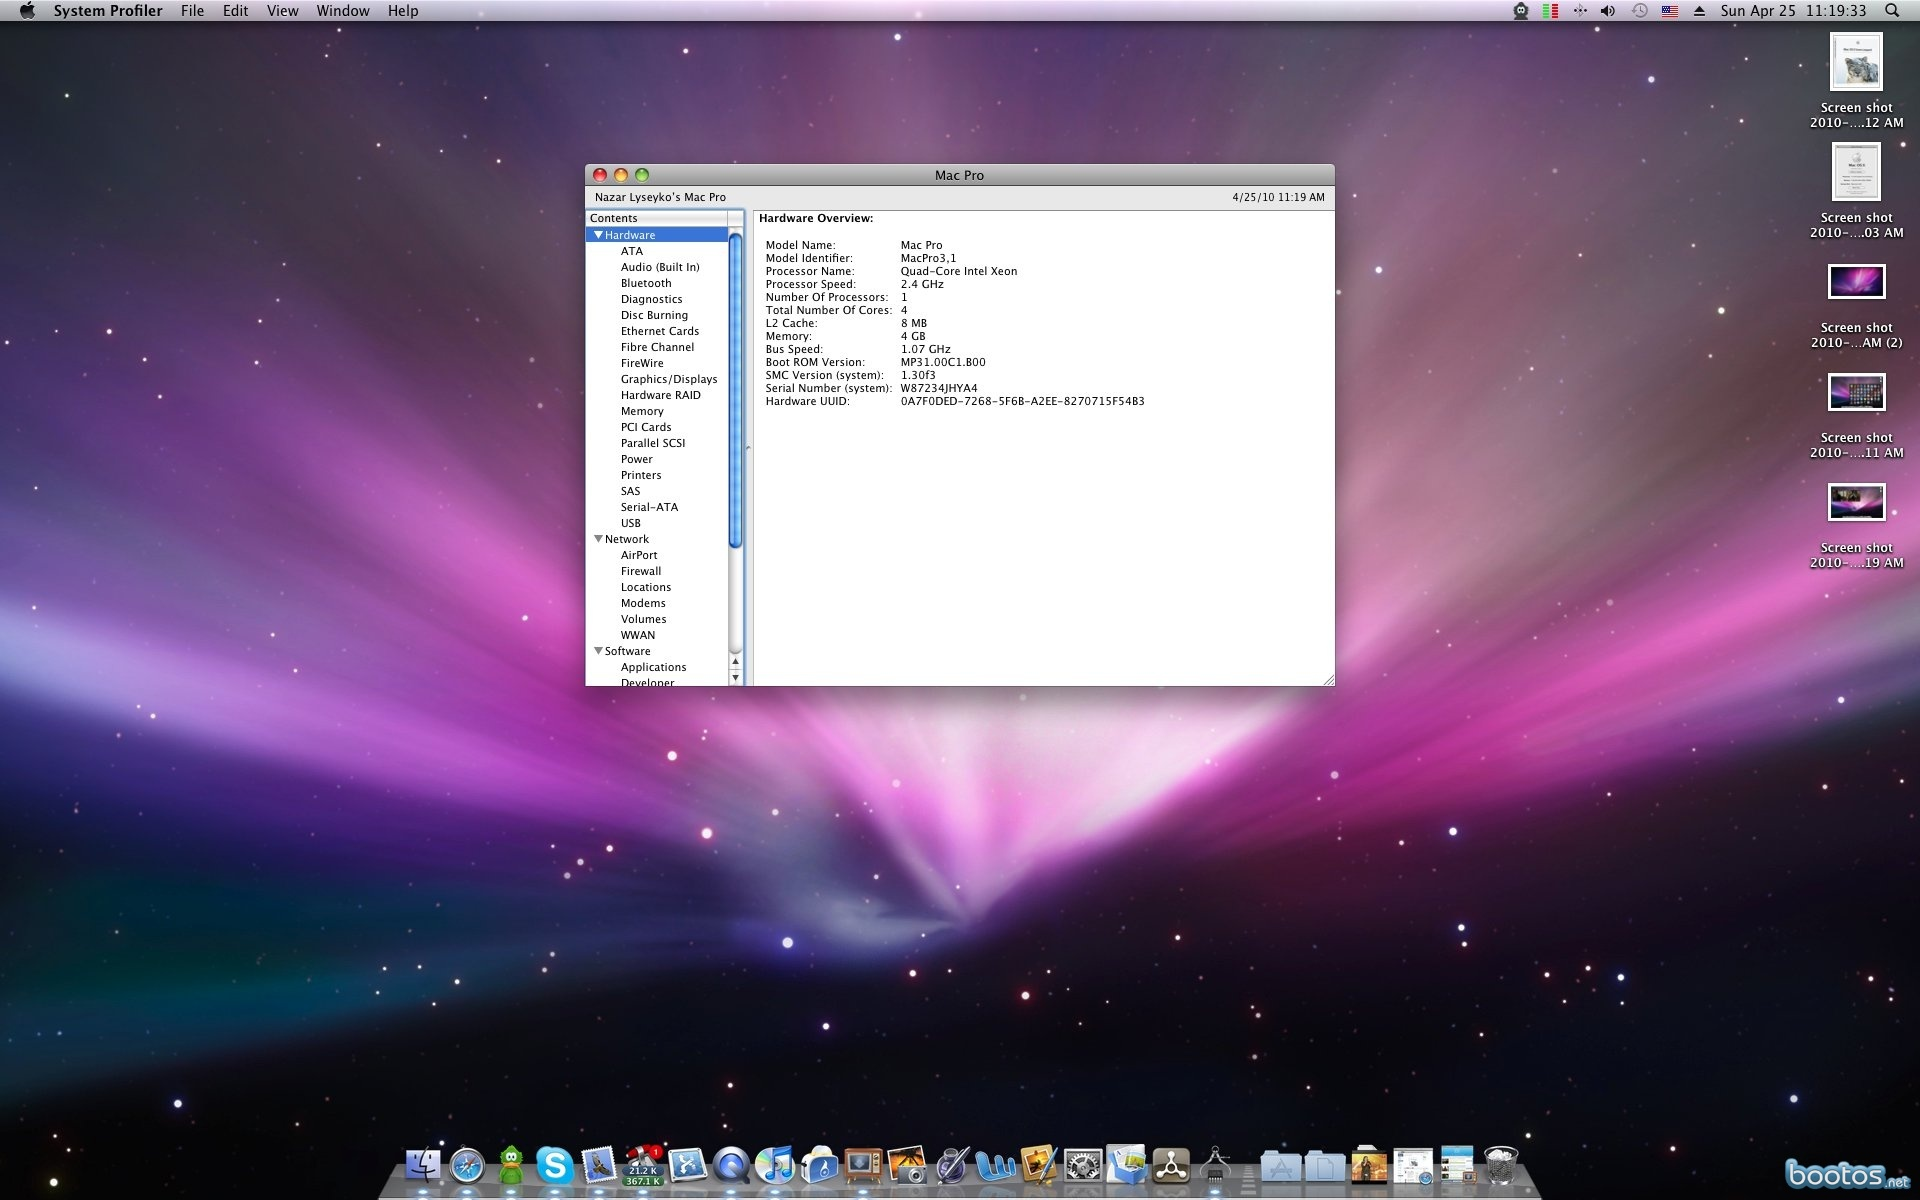 Download os x snow leopard 10a432 | redmond pie.